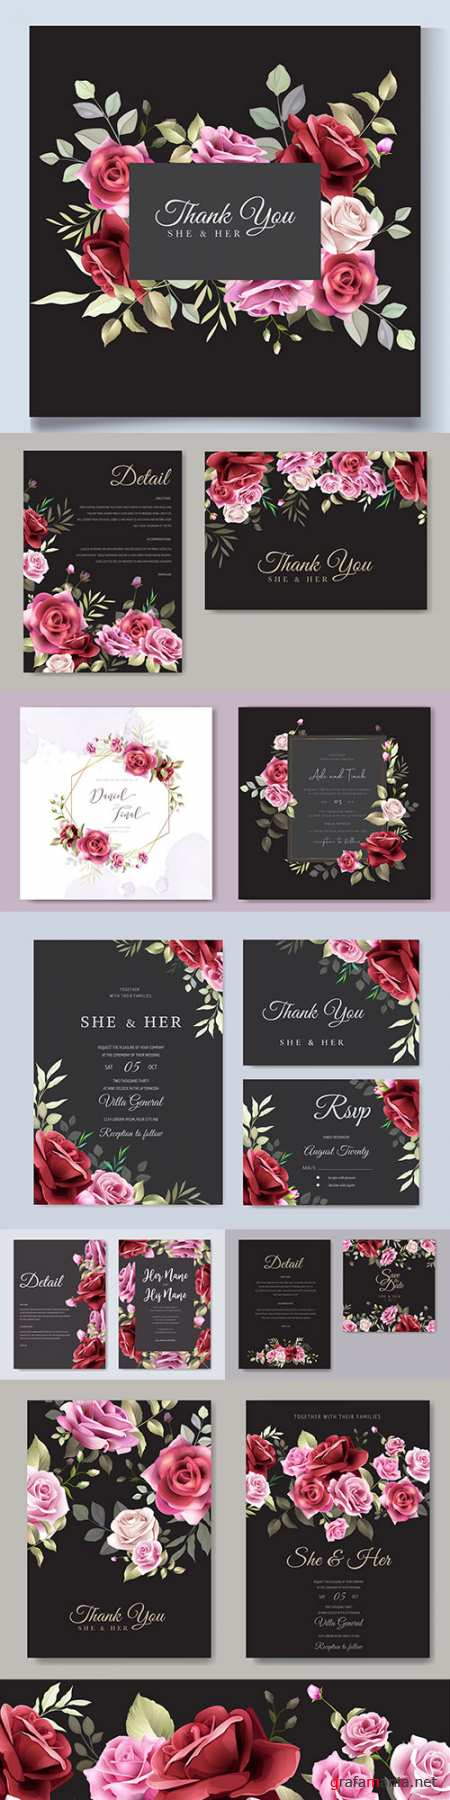 Wedding invitations floral elegant decorative template 7